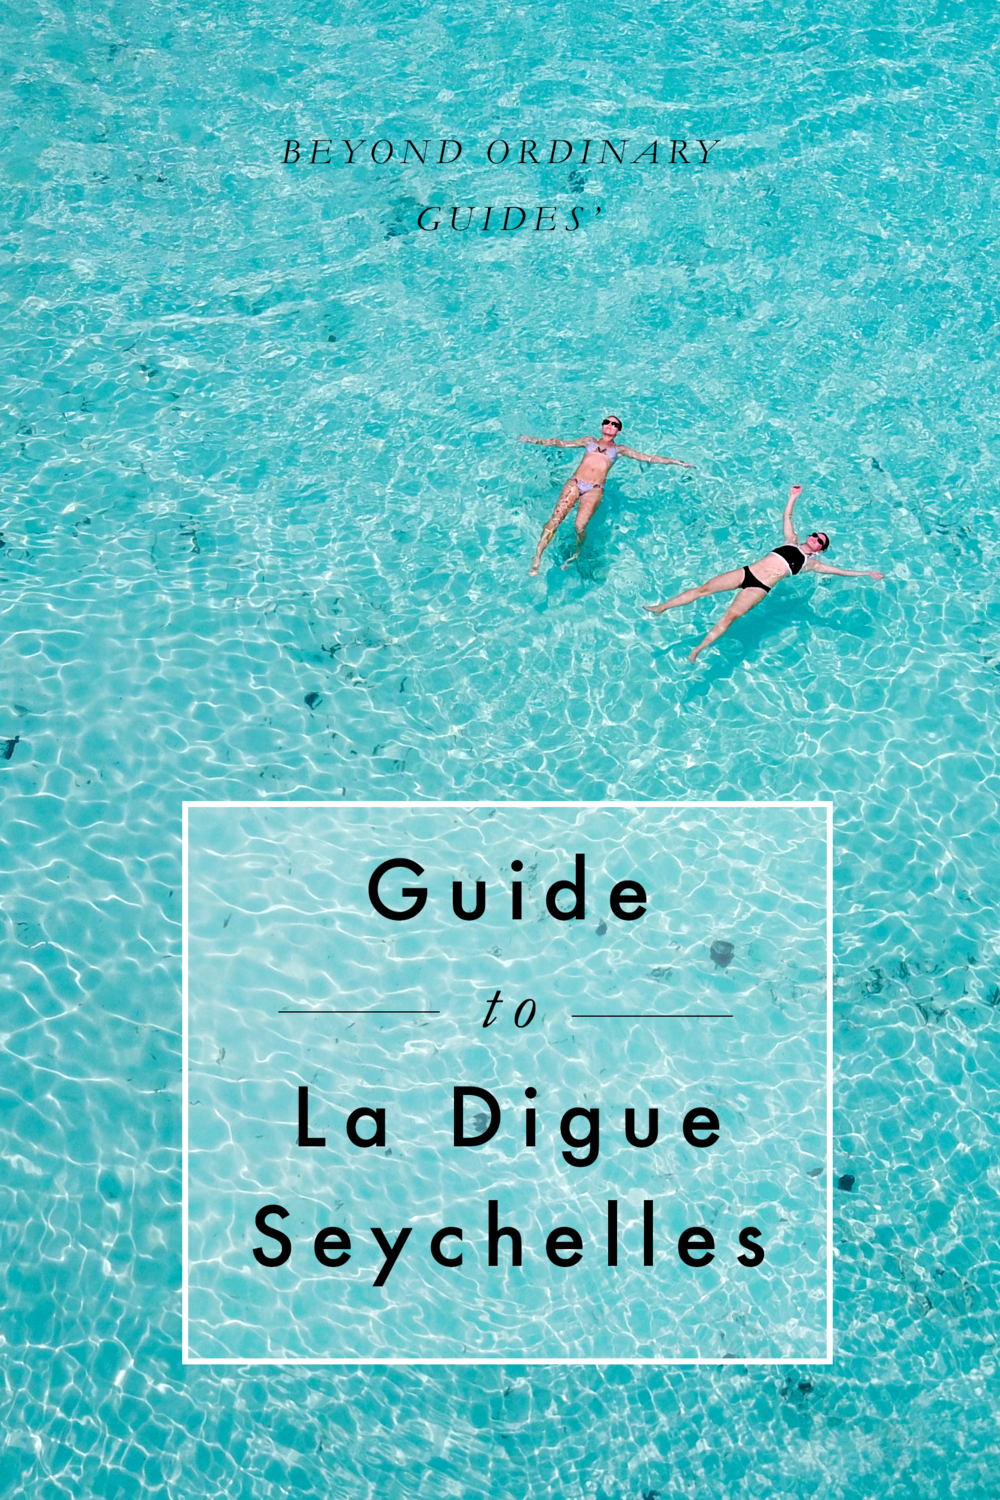 Beyond Ordinary Guide's Guide to La Digue, Seychelles